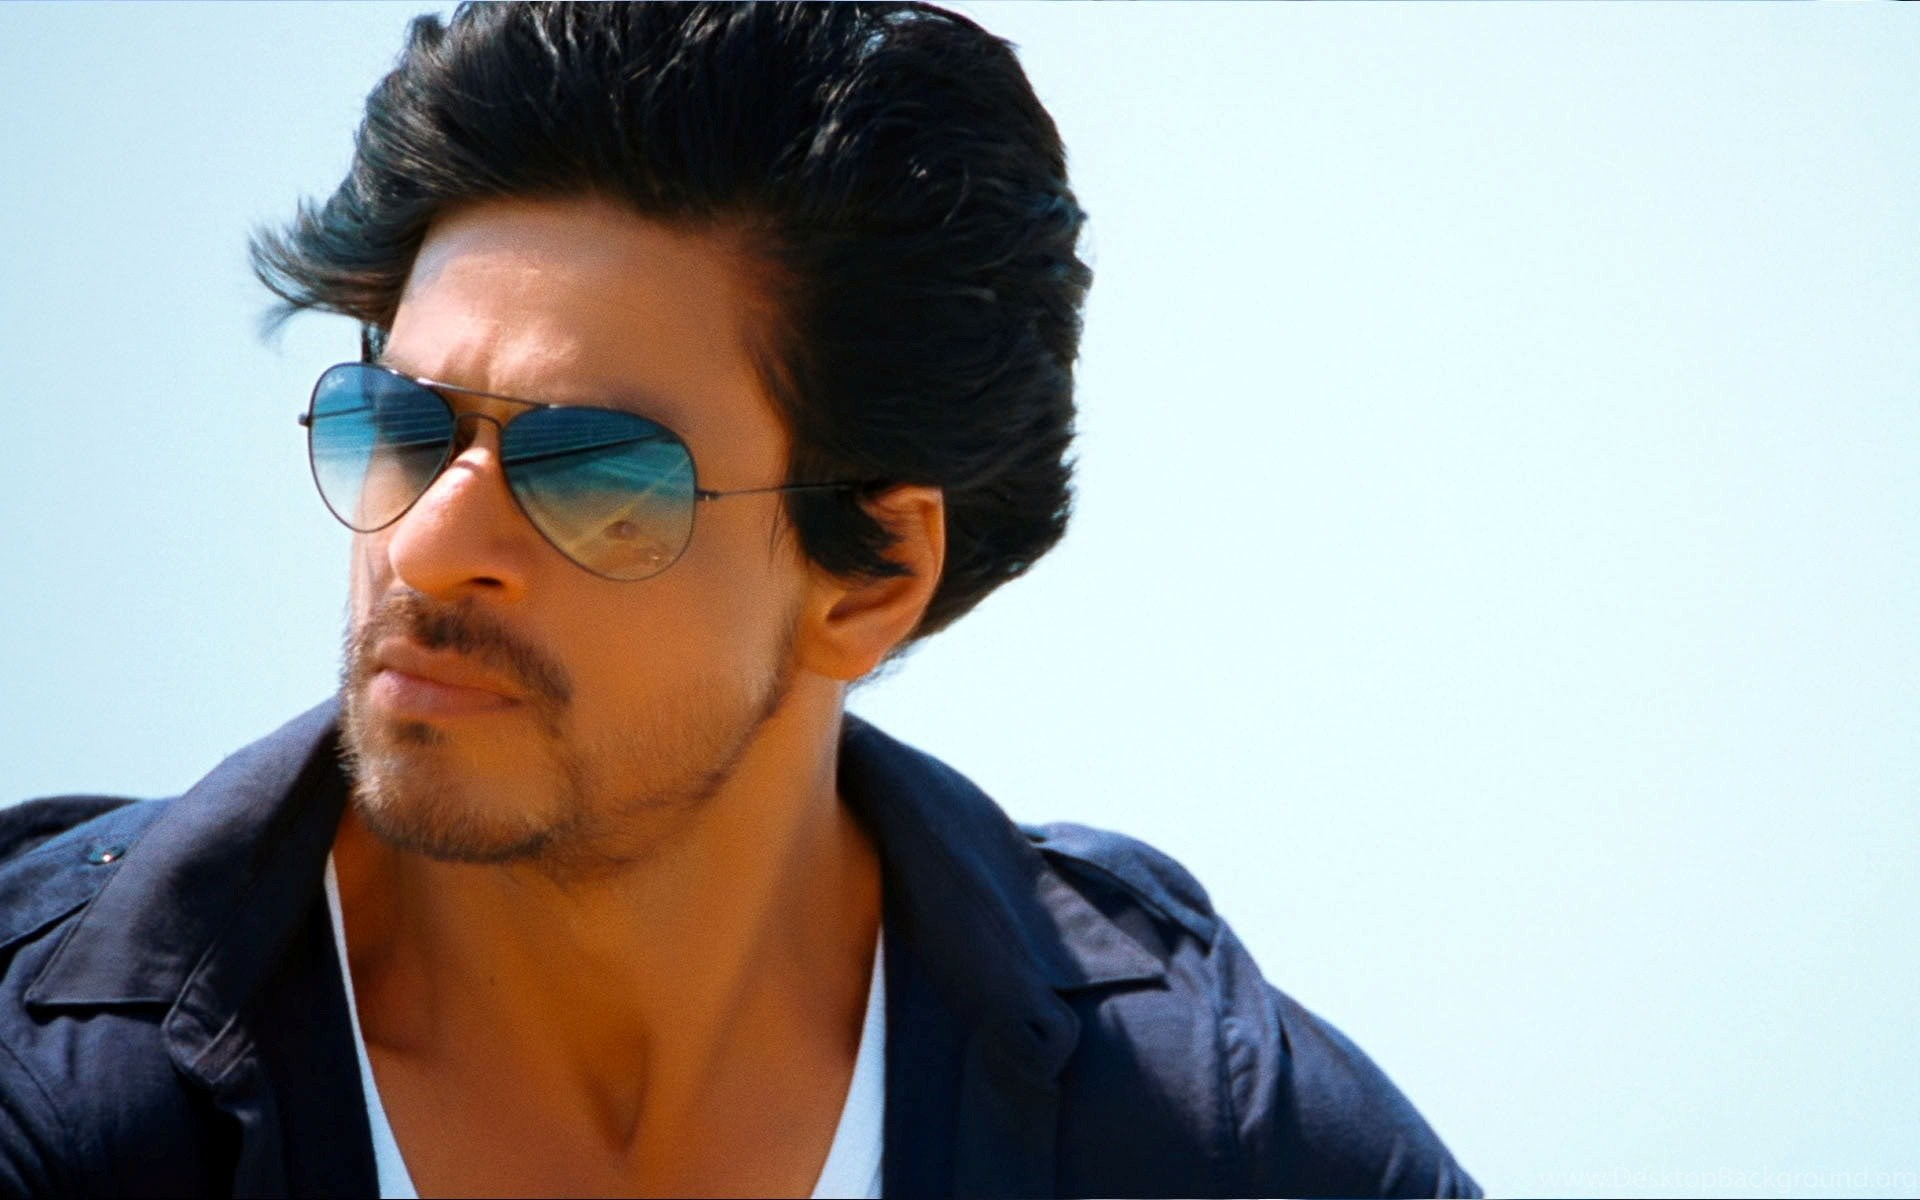 download free shahrukh khan in goggles hd wallpapers desktop background